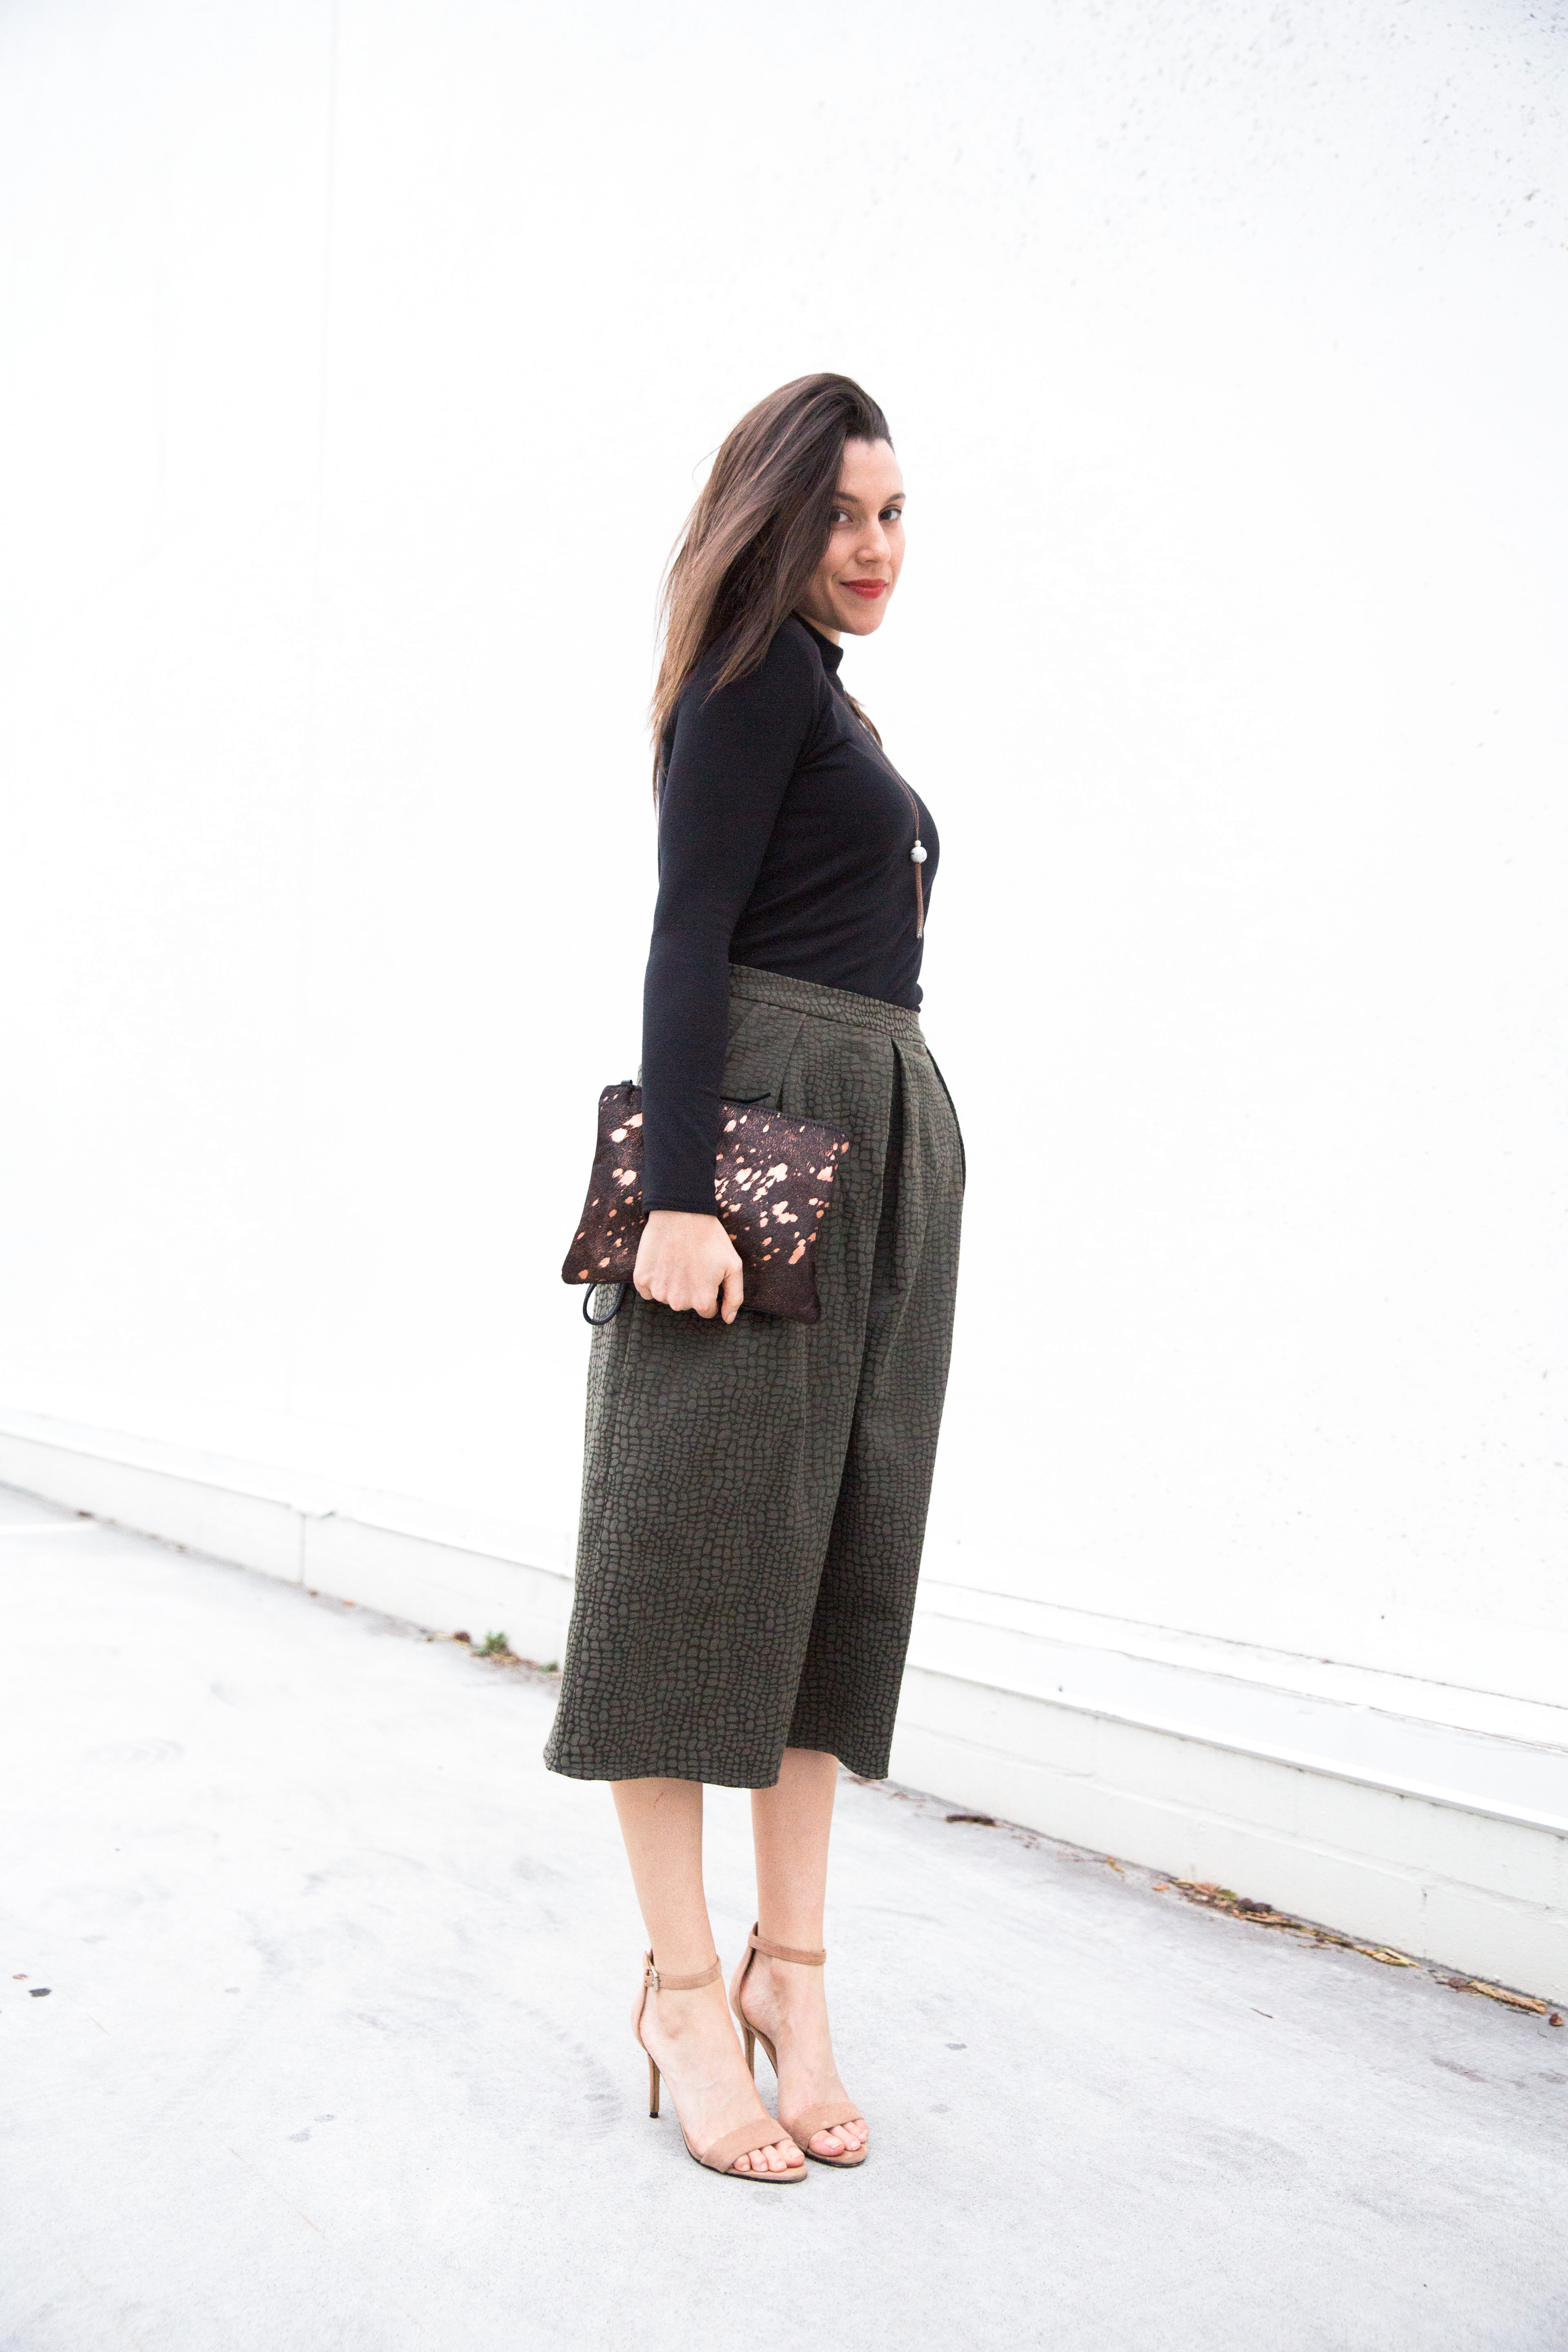 DIY Culottes + Turtleneck | ADA SPRAGG | Not Your Nanna's Sewing